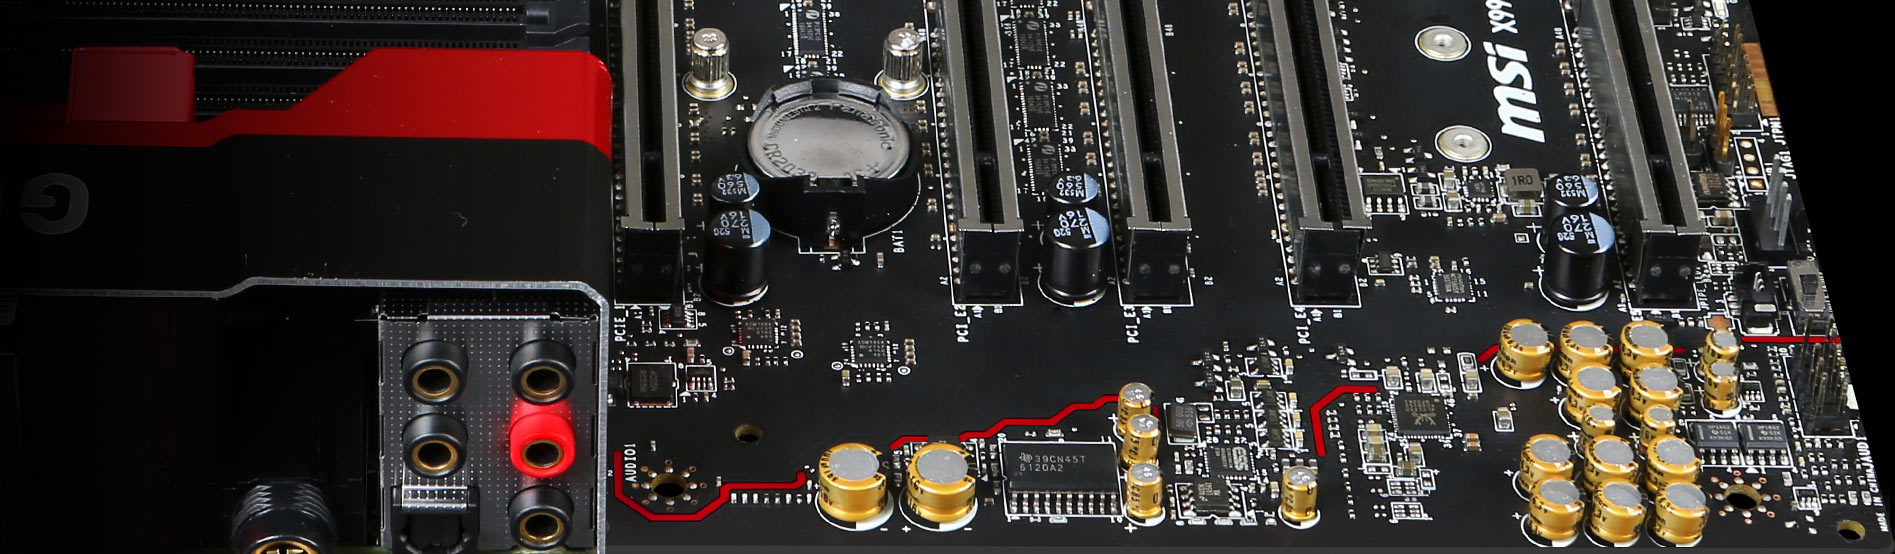 X99a Godlike Gaming Motherboard The World Leader In Actually Nic Is An Opamp Circuit Implementation Of Quotoverhelping 635mm Golden Dedicated Headphone Out